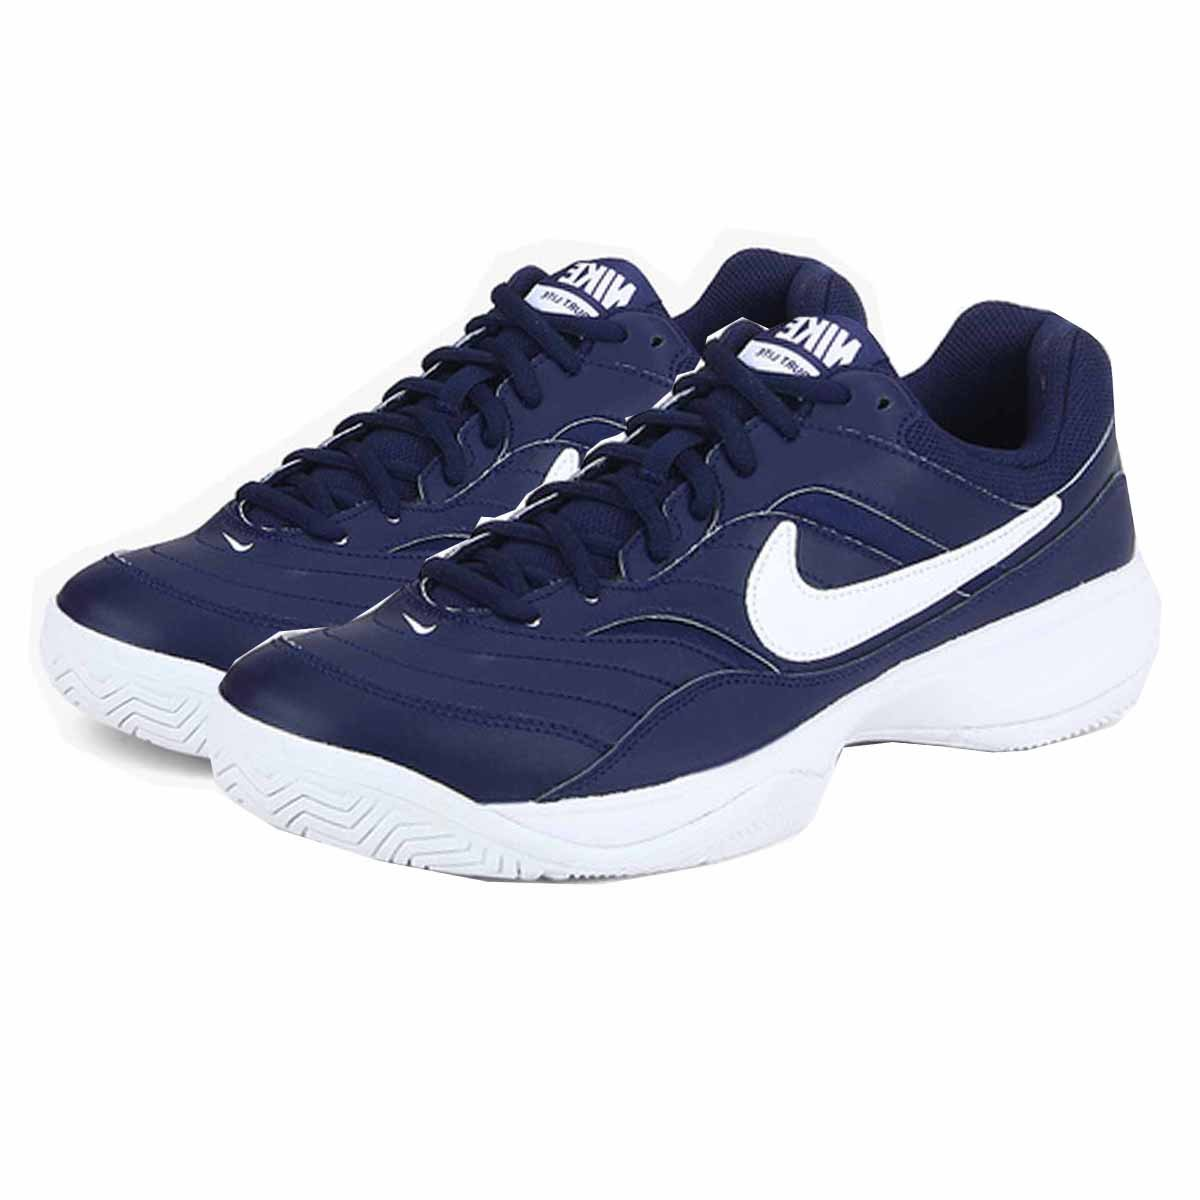 41a06961d267 Buy Nike Court Lite Tennis Shoes (Blue White) Online in India